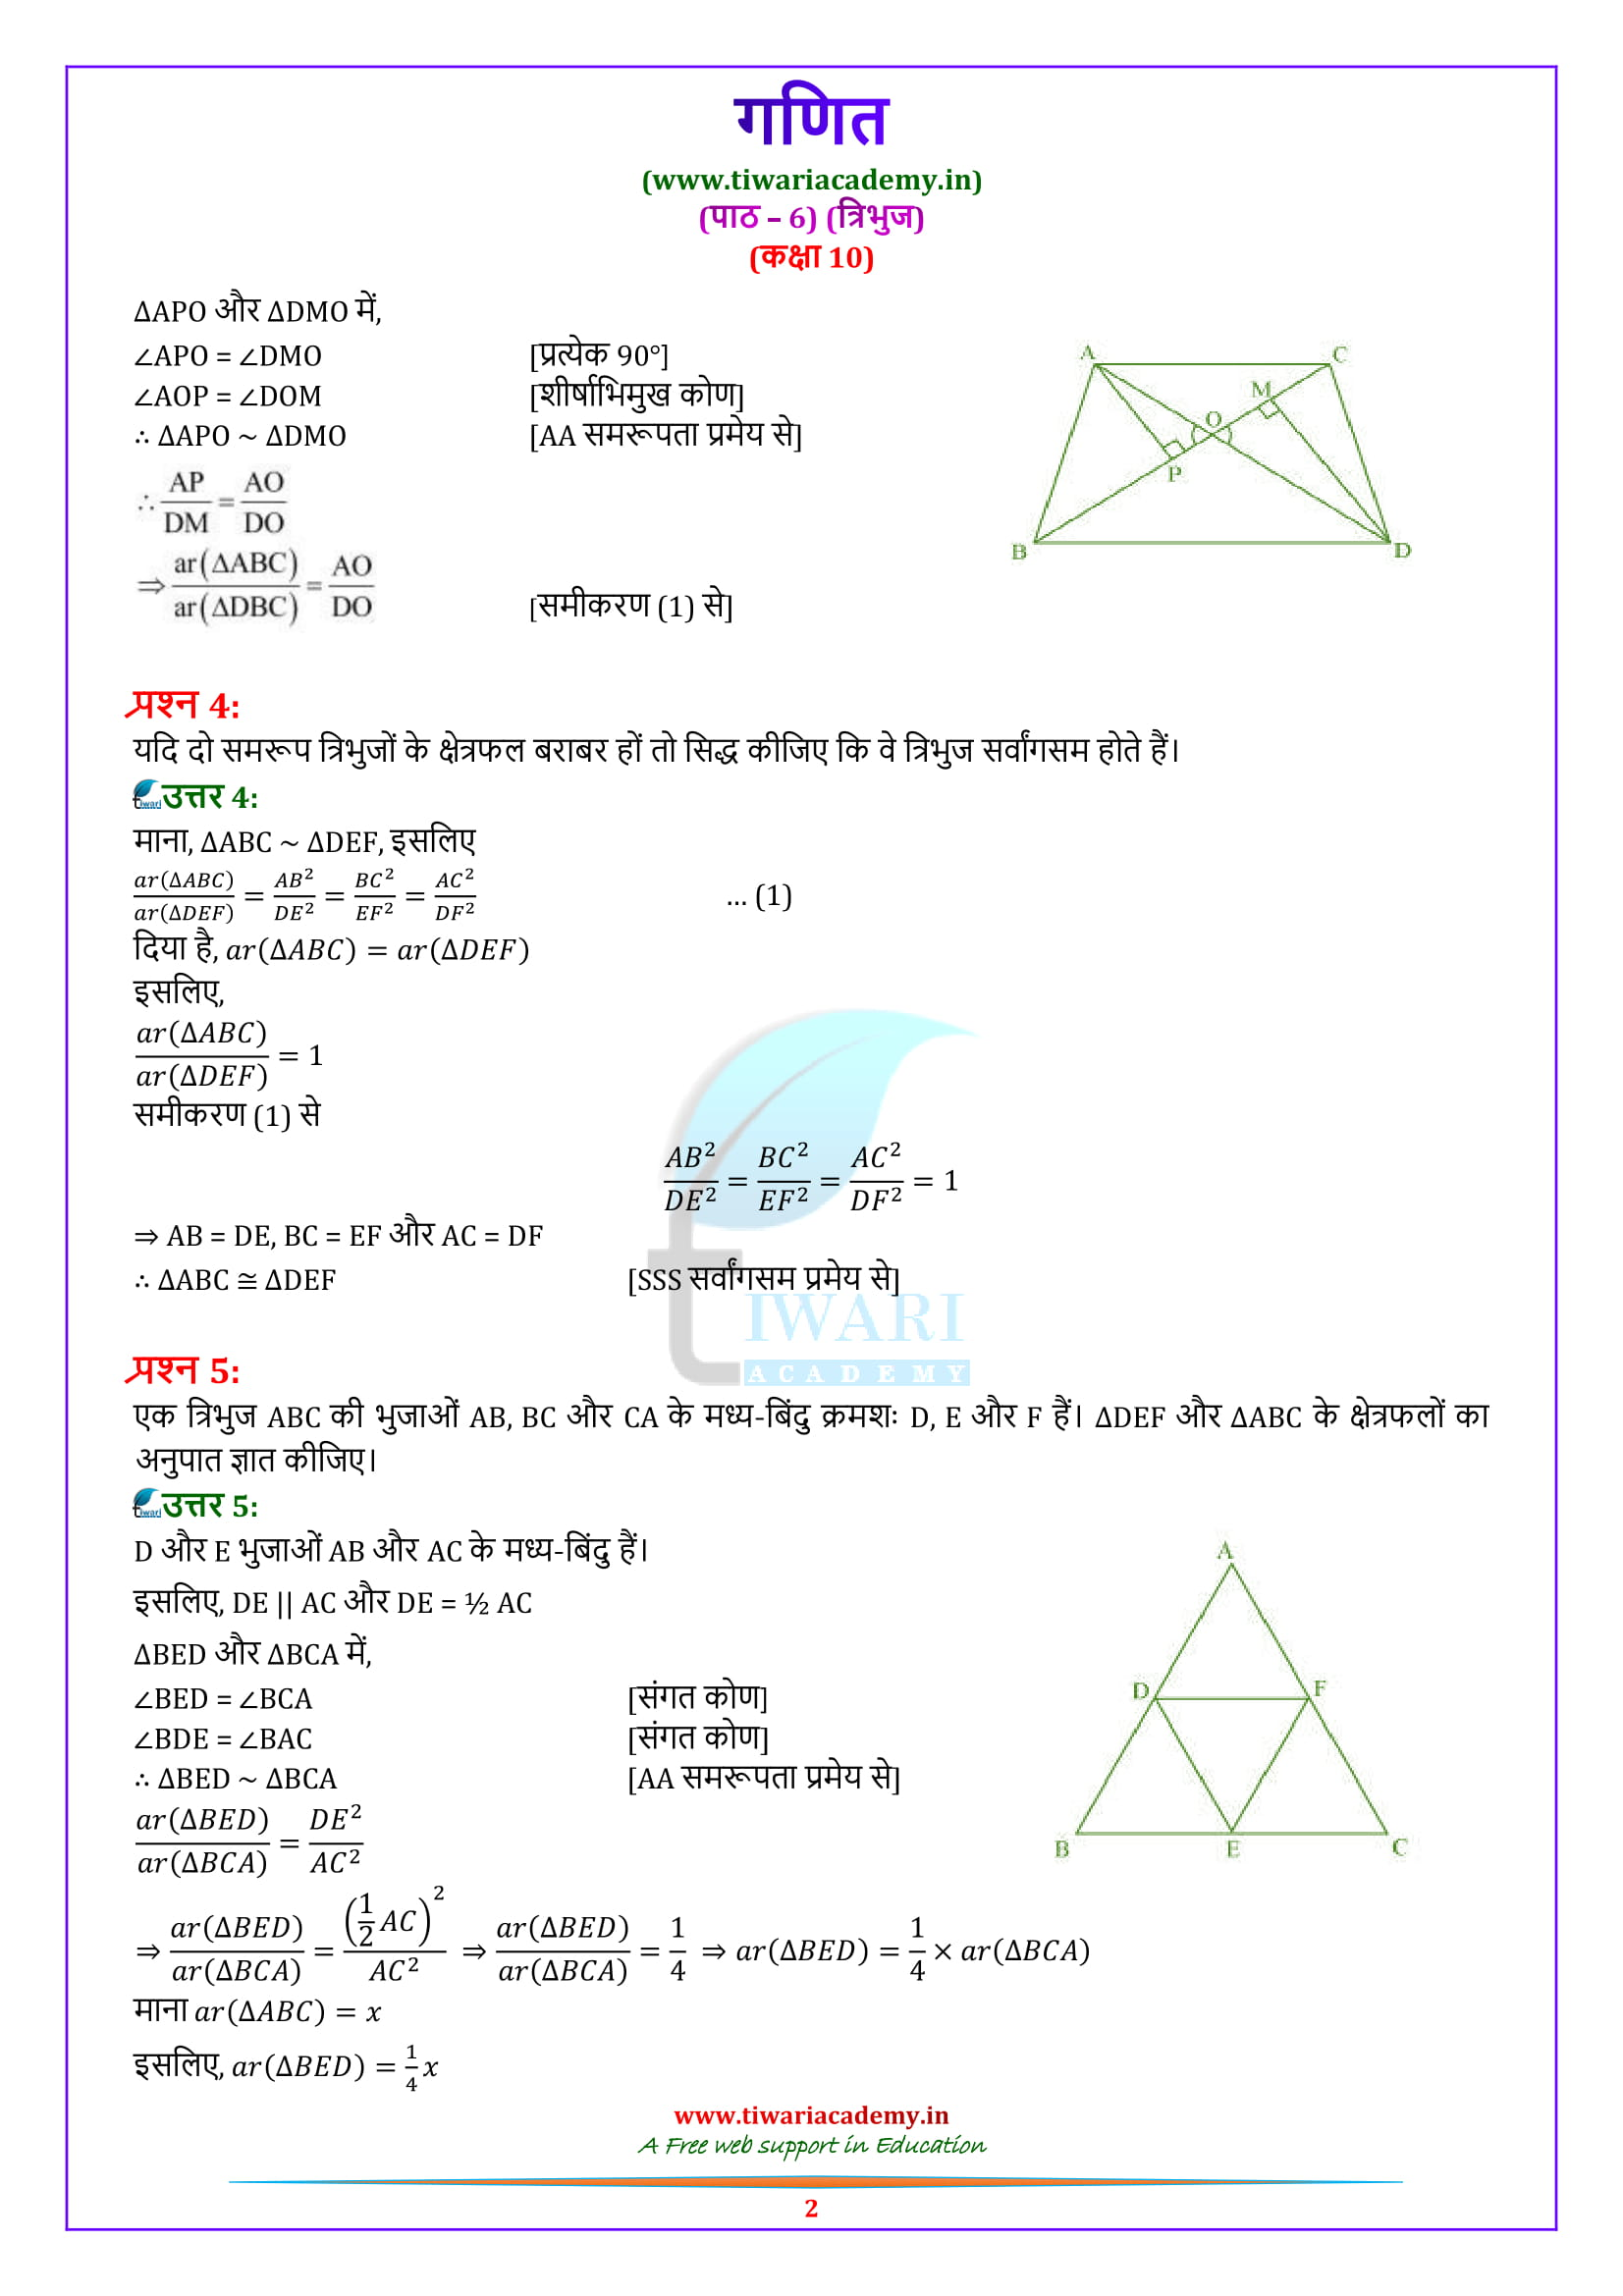 NCERT Sols for class 10 maths exercise 6.4 in hindi medium